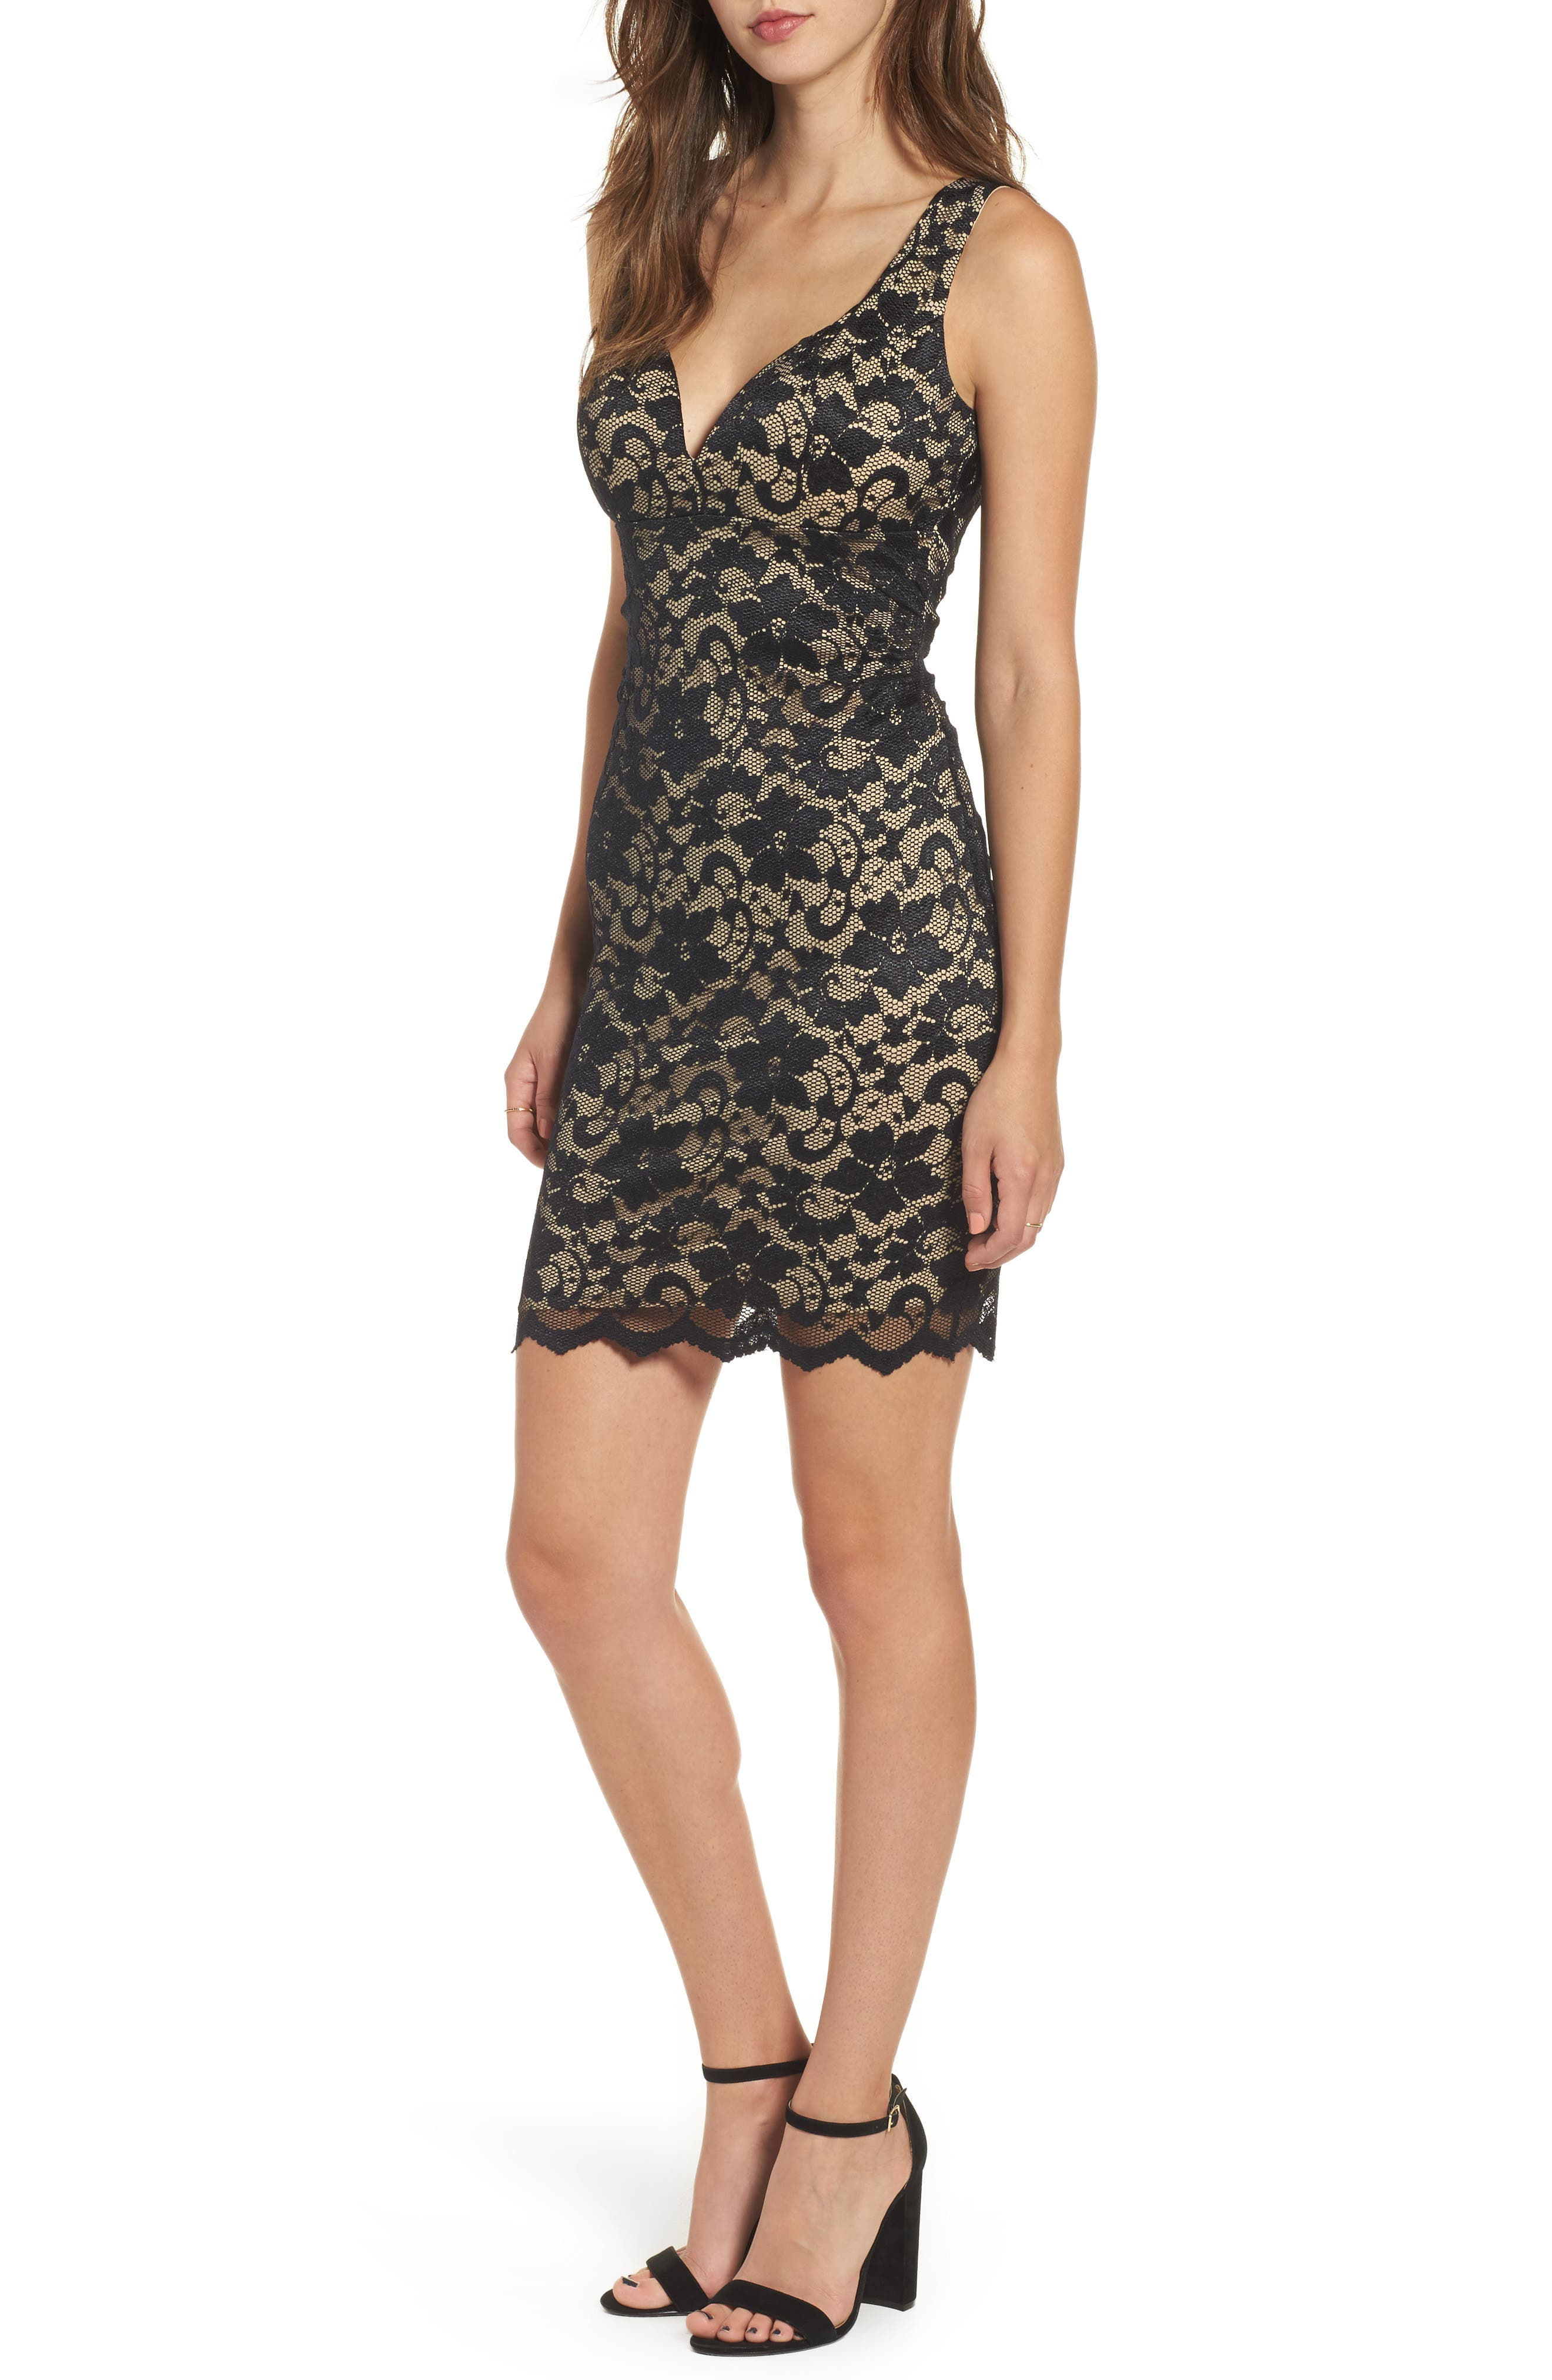 Love Nickie Lew Lace Body Con Dress